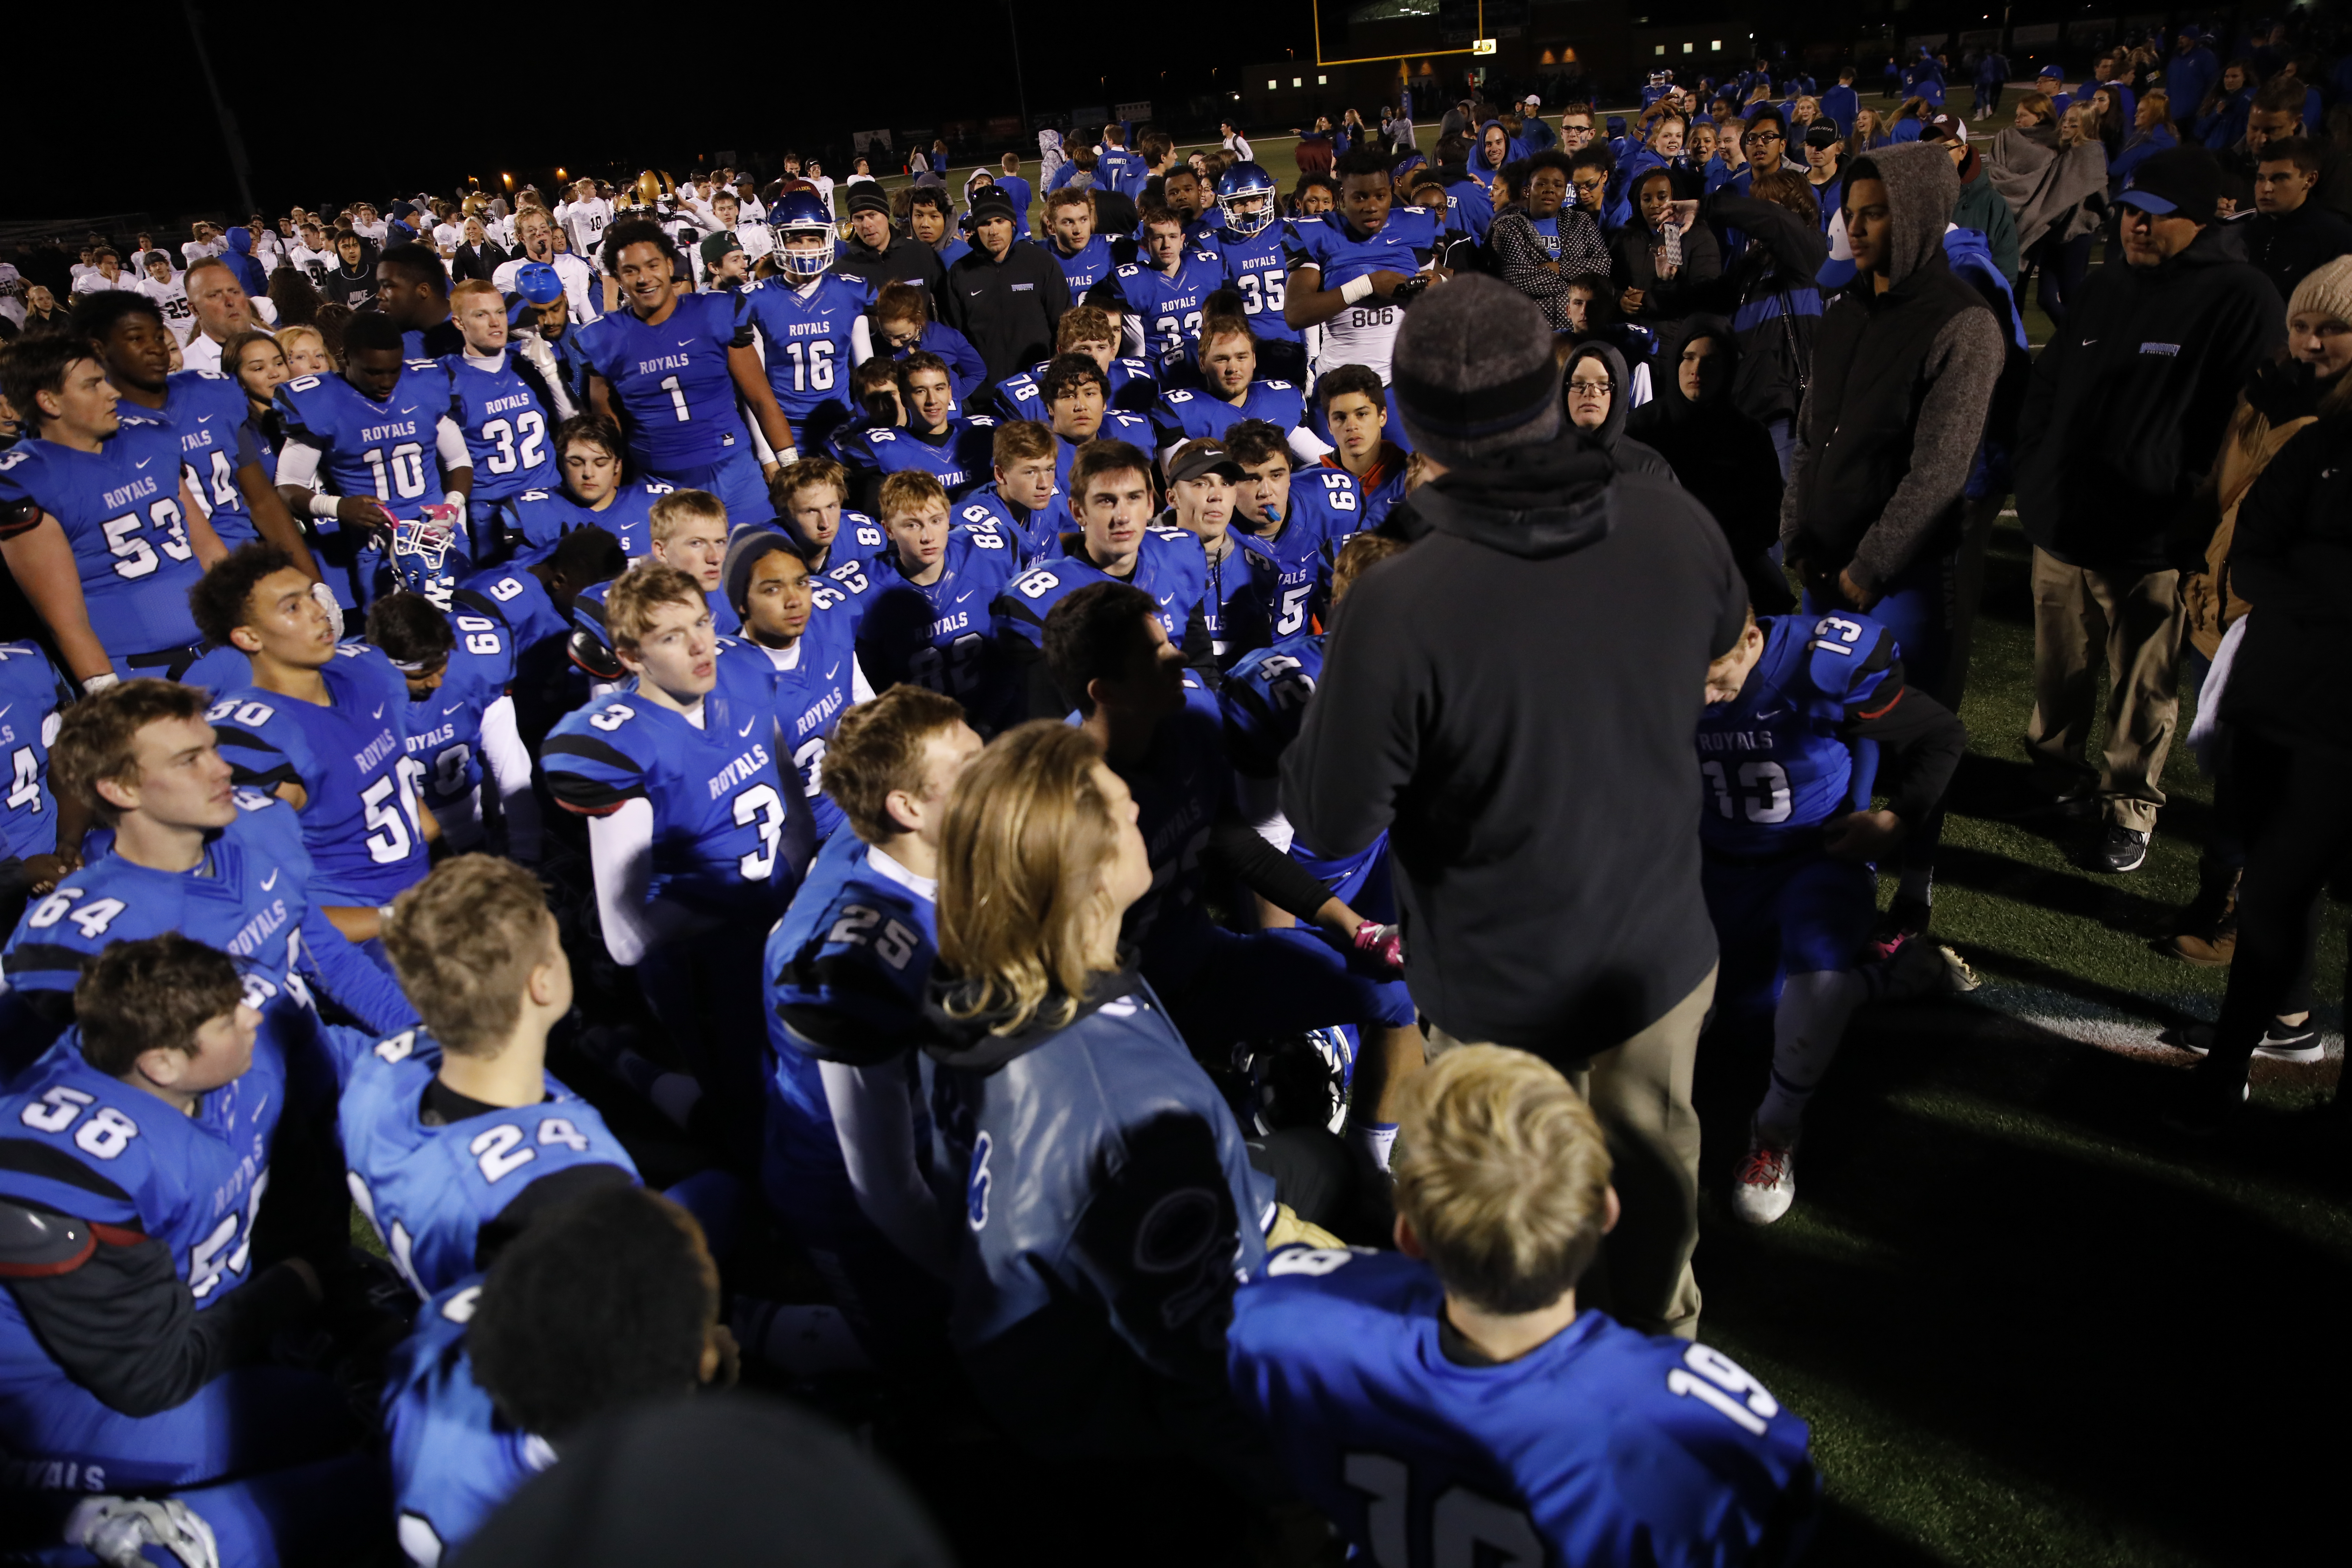 Woodbury players listen to the coach talk after they won the game 47-25 at home. Photo by Chris Juhn